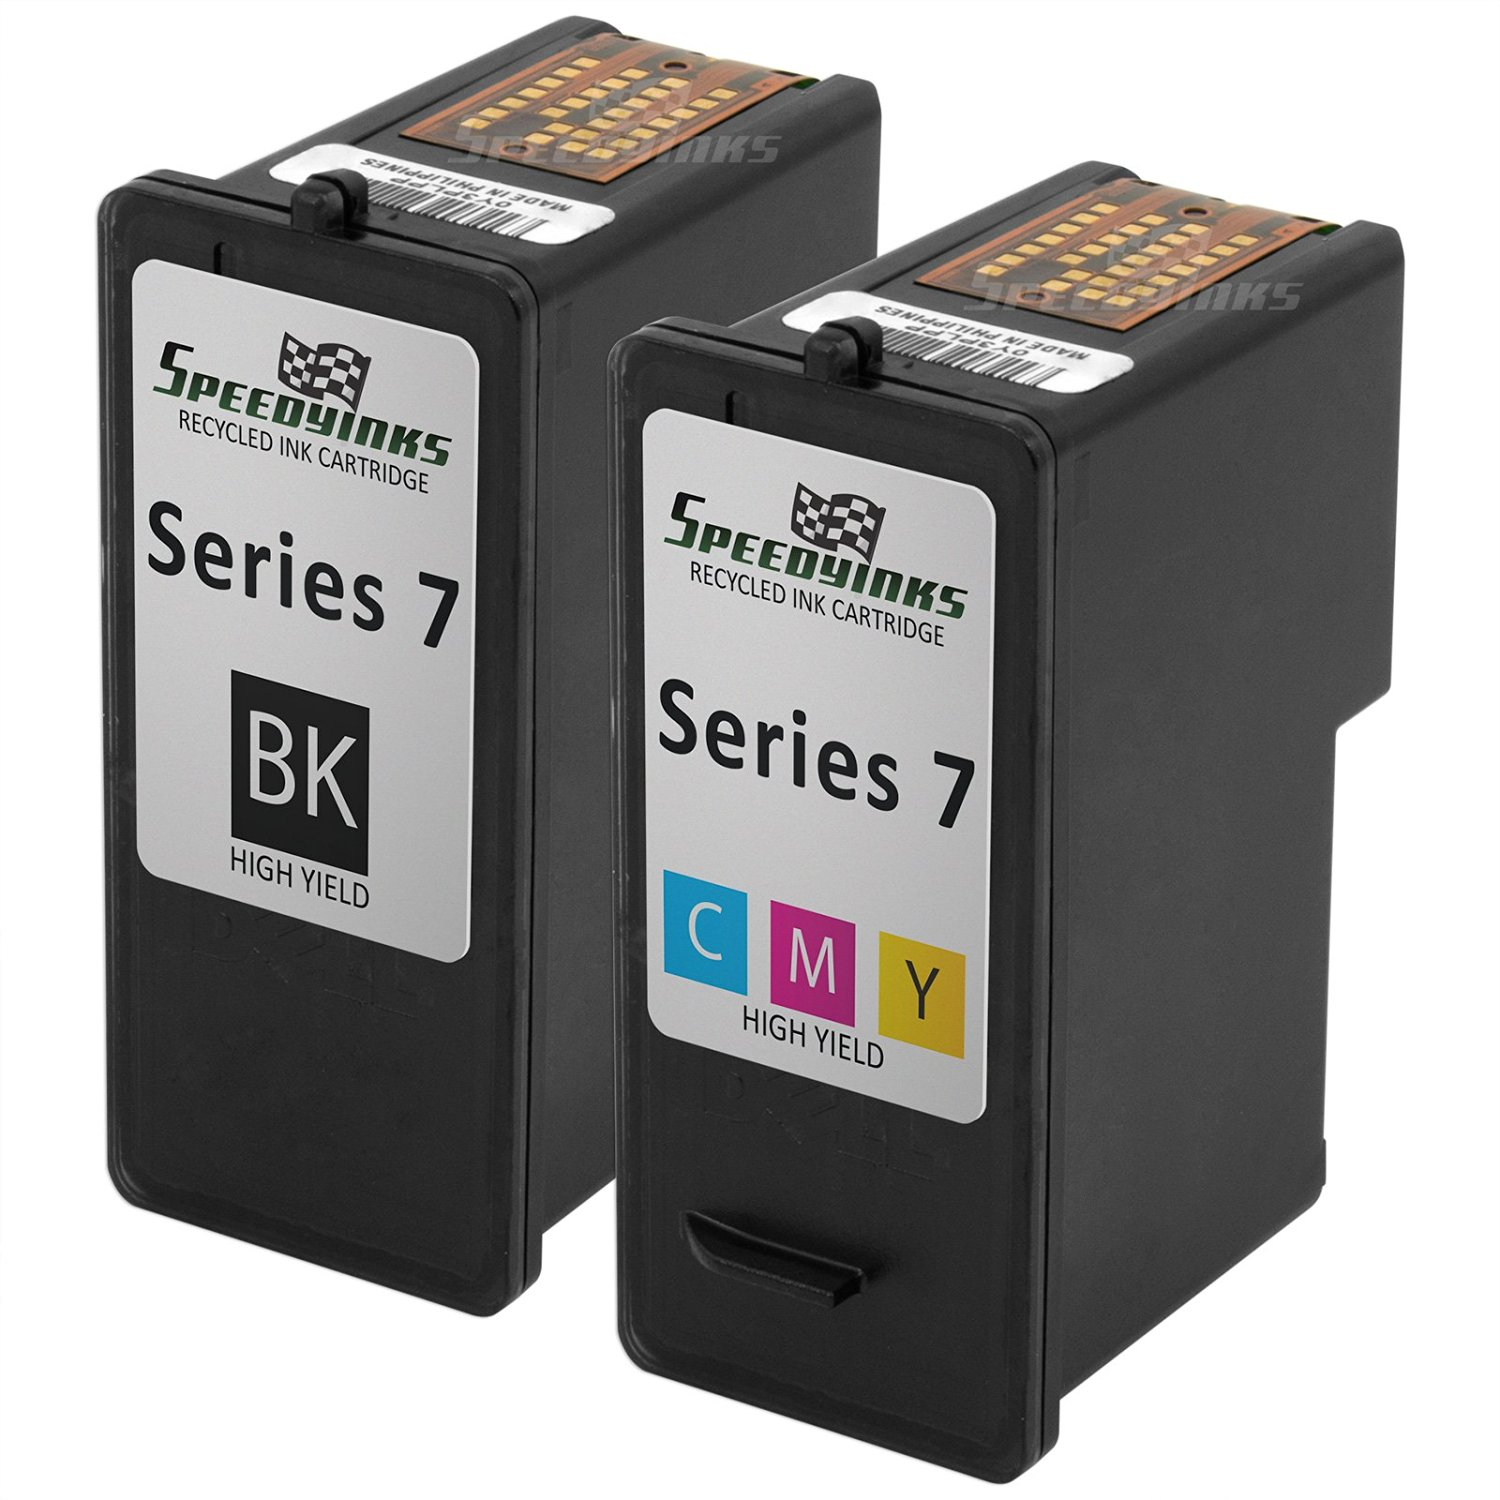 Speedy Inks - Remanfactured Dell Series 7 HY GR274 GR277 Set of 2 Ink Cartridges 1 Black 1 Color for use in Dell Photo all-in-one 966, Dell Photo all-in-one 968, Dell Photo all-in-one 968w